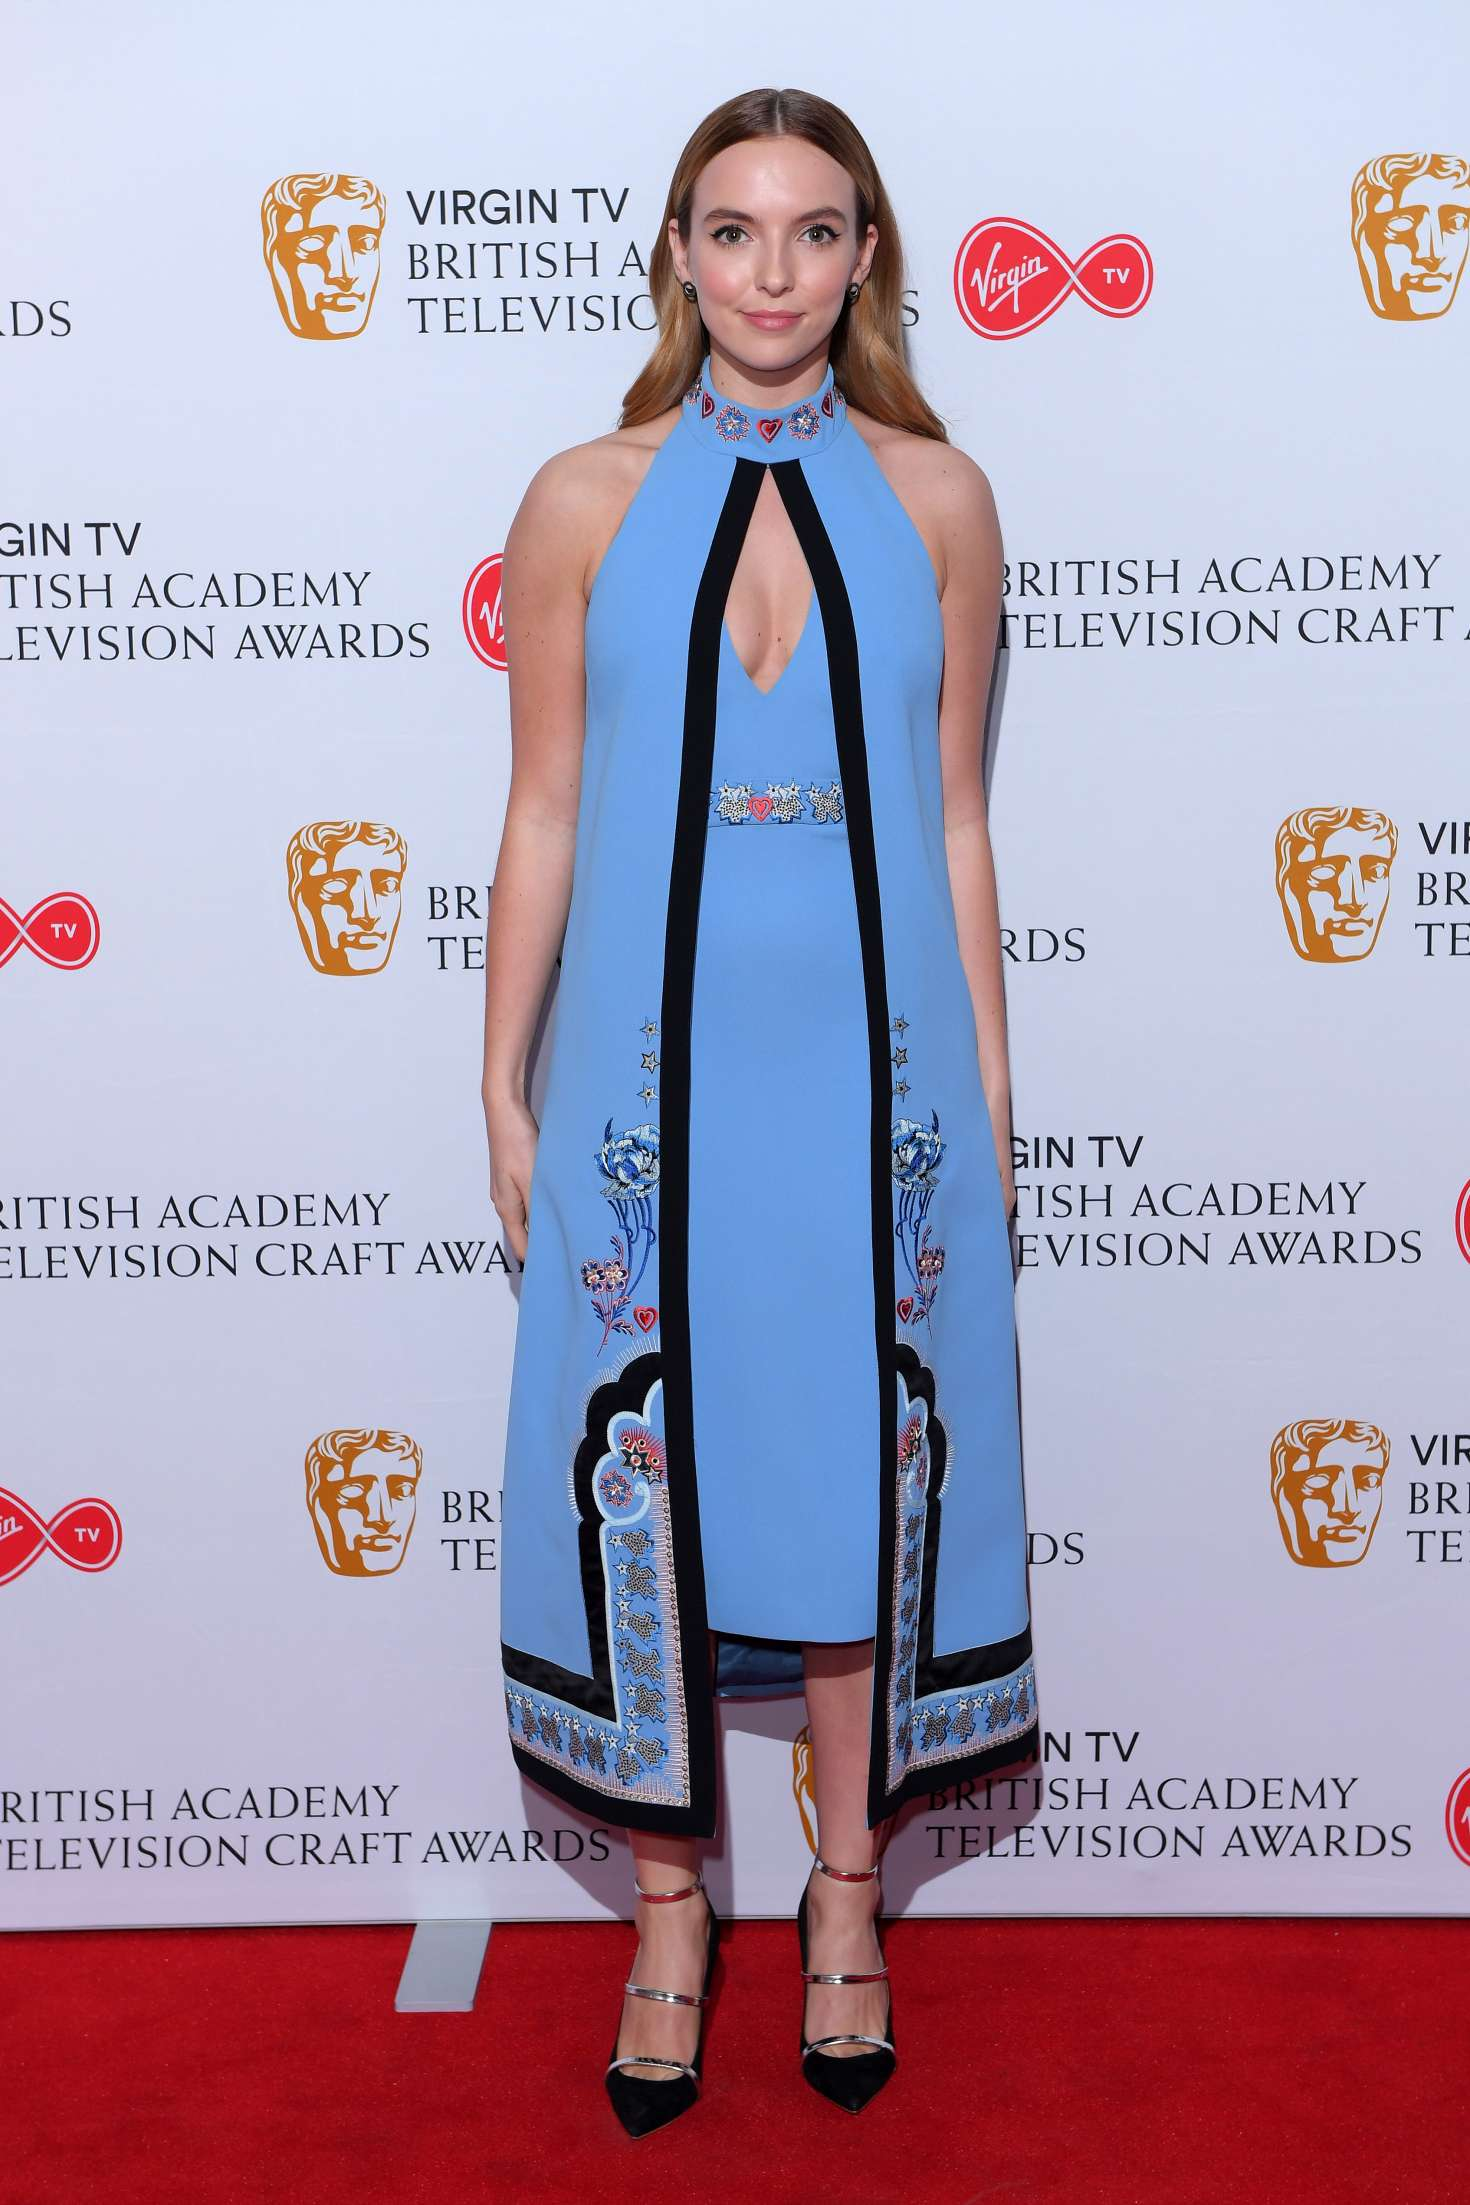 images Jodie comer bafta television awards in london